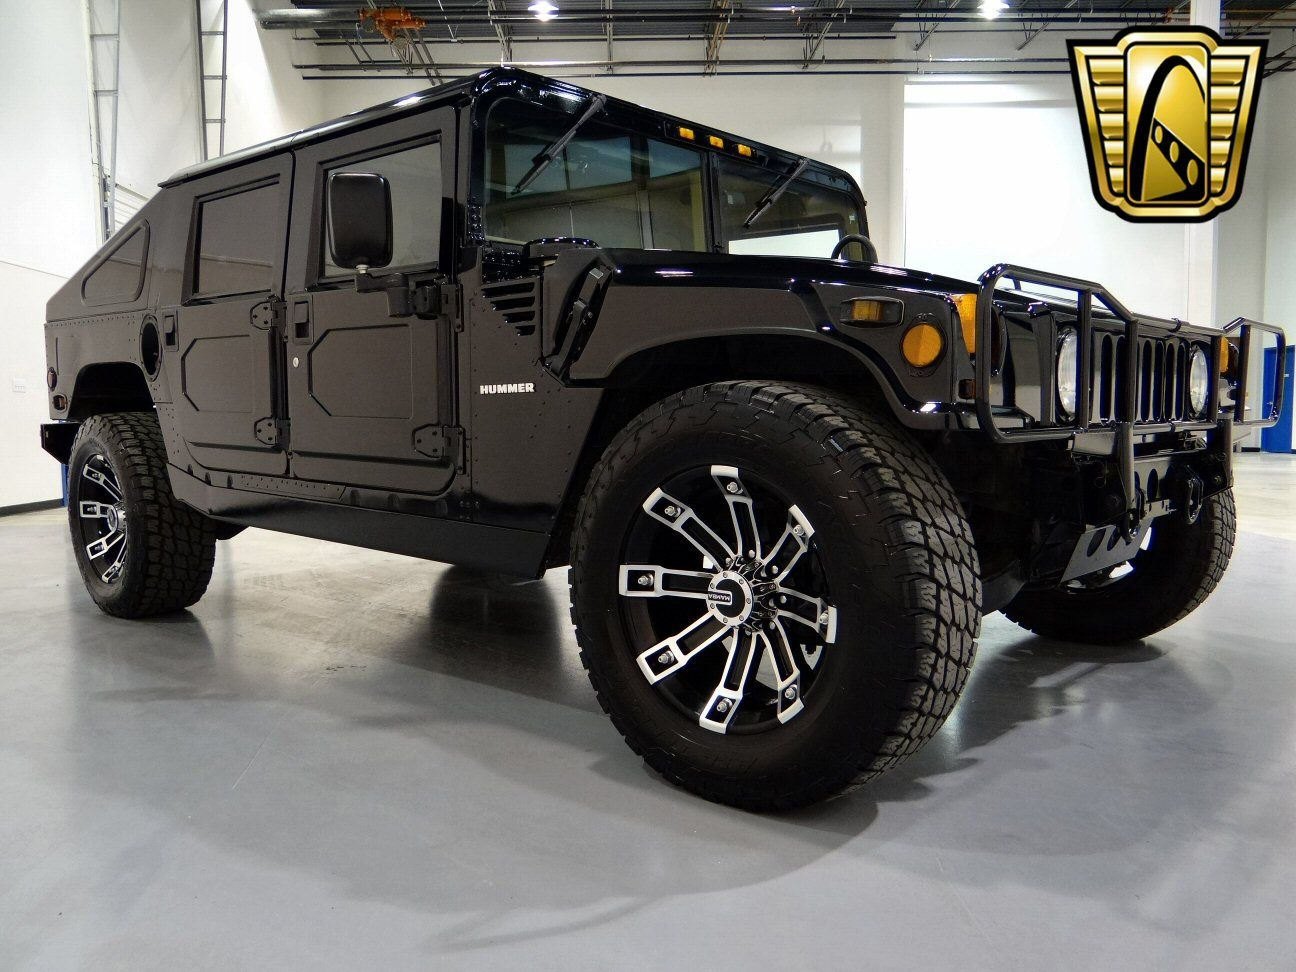 2015 Hummer H1 Concept And Price Http Newautocarhq Com 2015 Hummer H1 Concept And Price